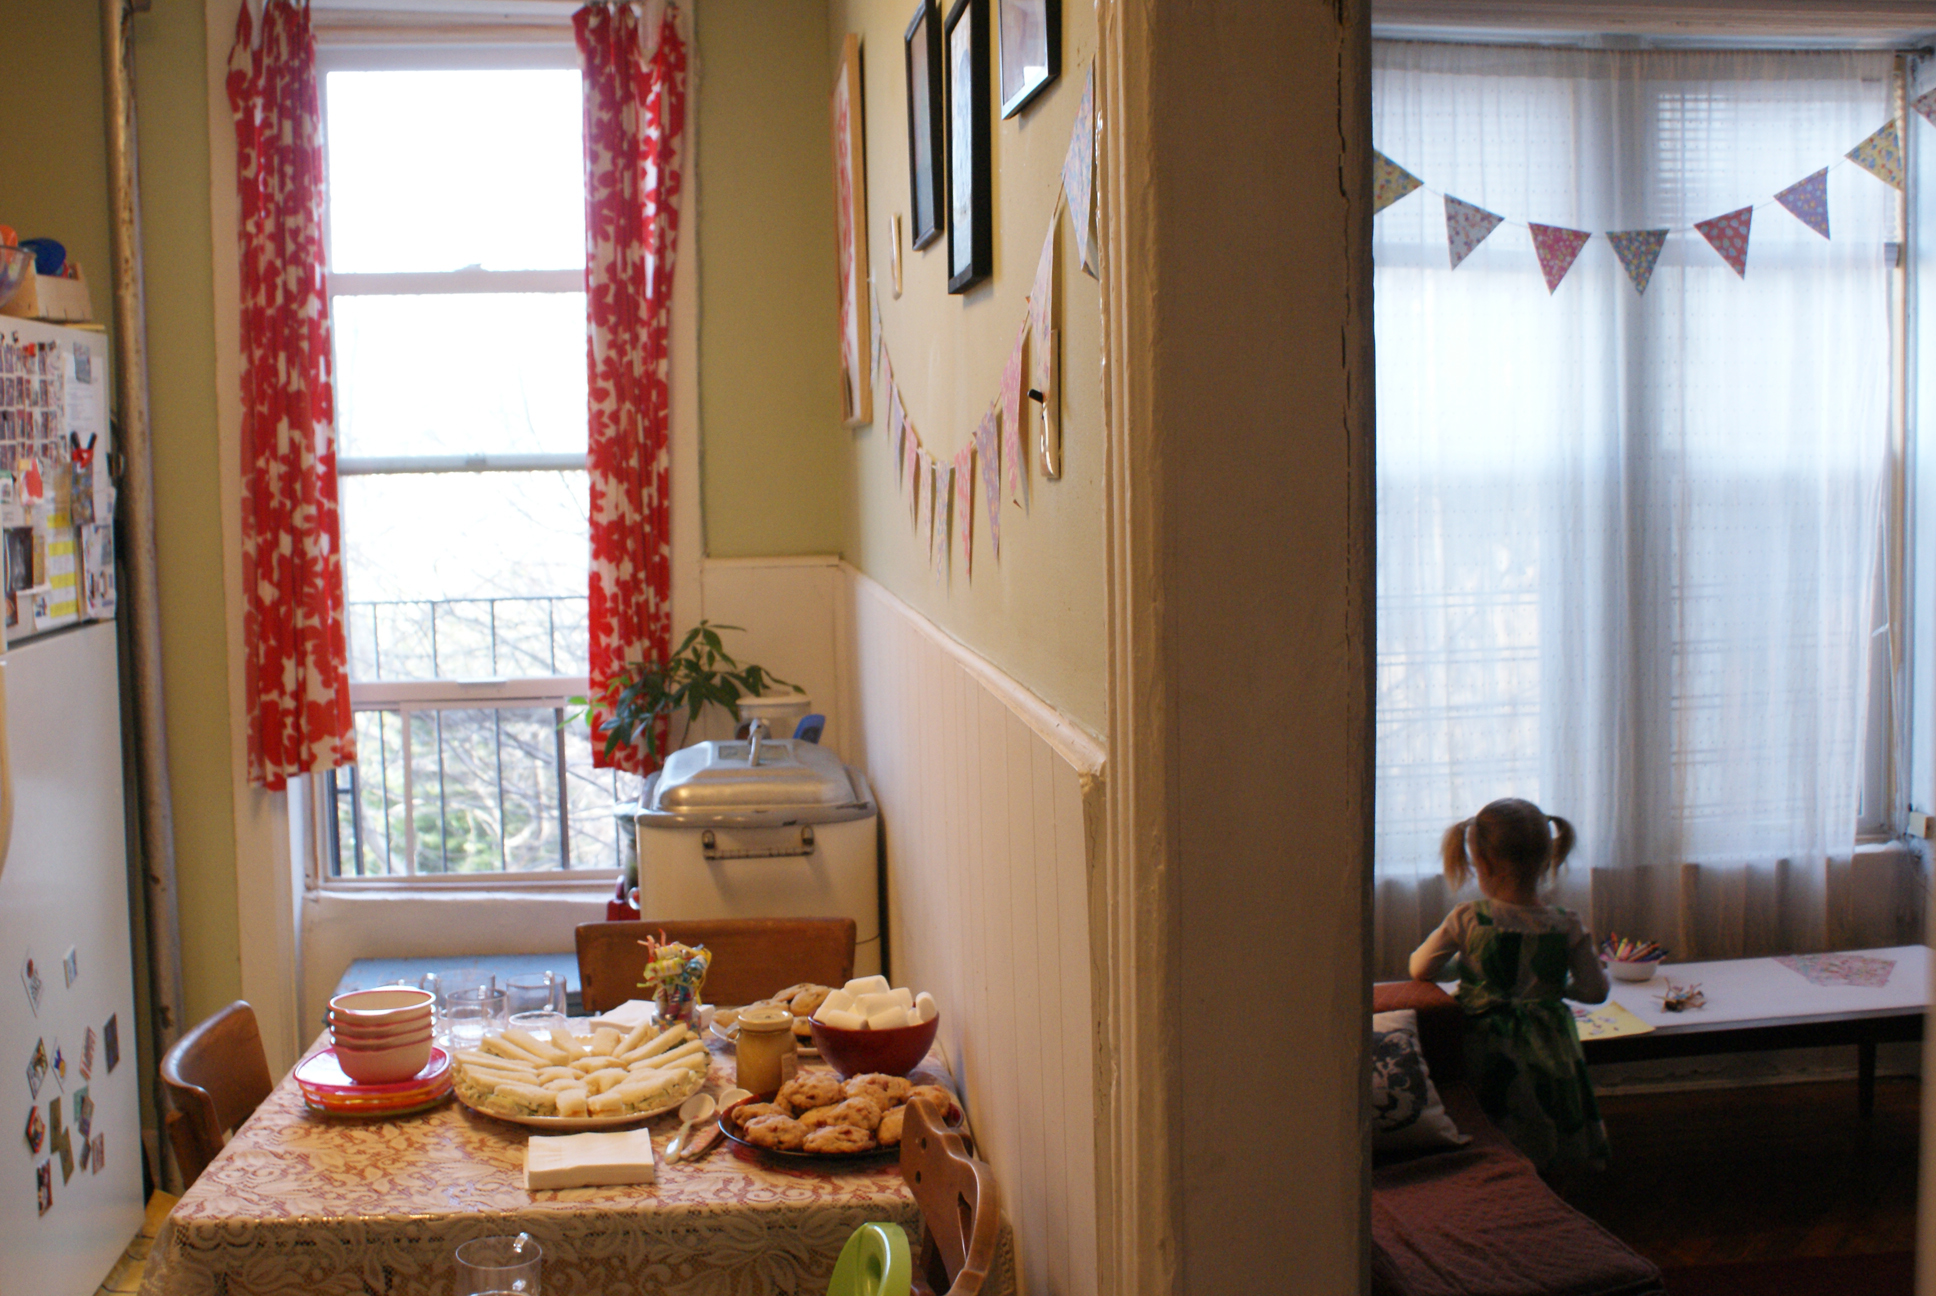 How to host a great kids 39 party in a small apartment for Decorating your apartment